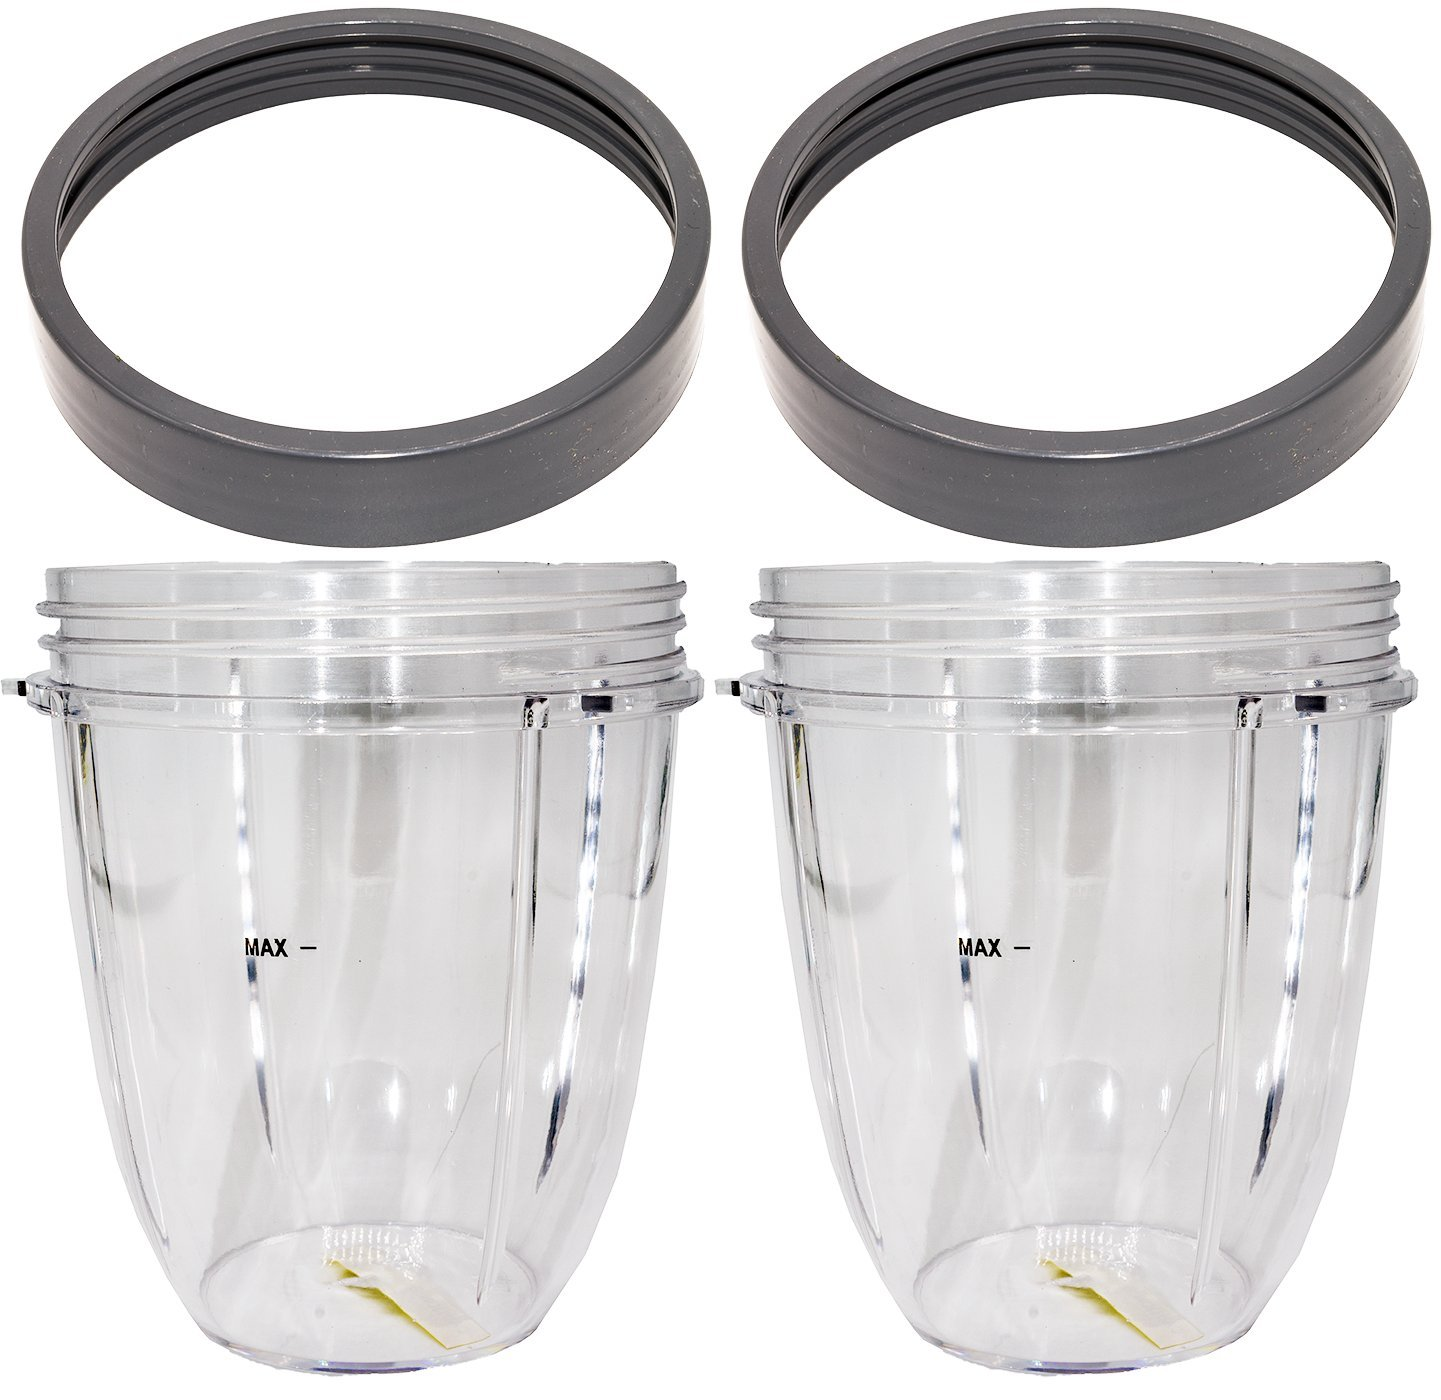 Blendin 2 Pack 18 Ounce Short Capacity Cup with Lip Rings, Fits Nutribullet 600W 900W Blenders